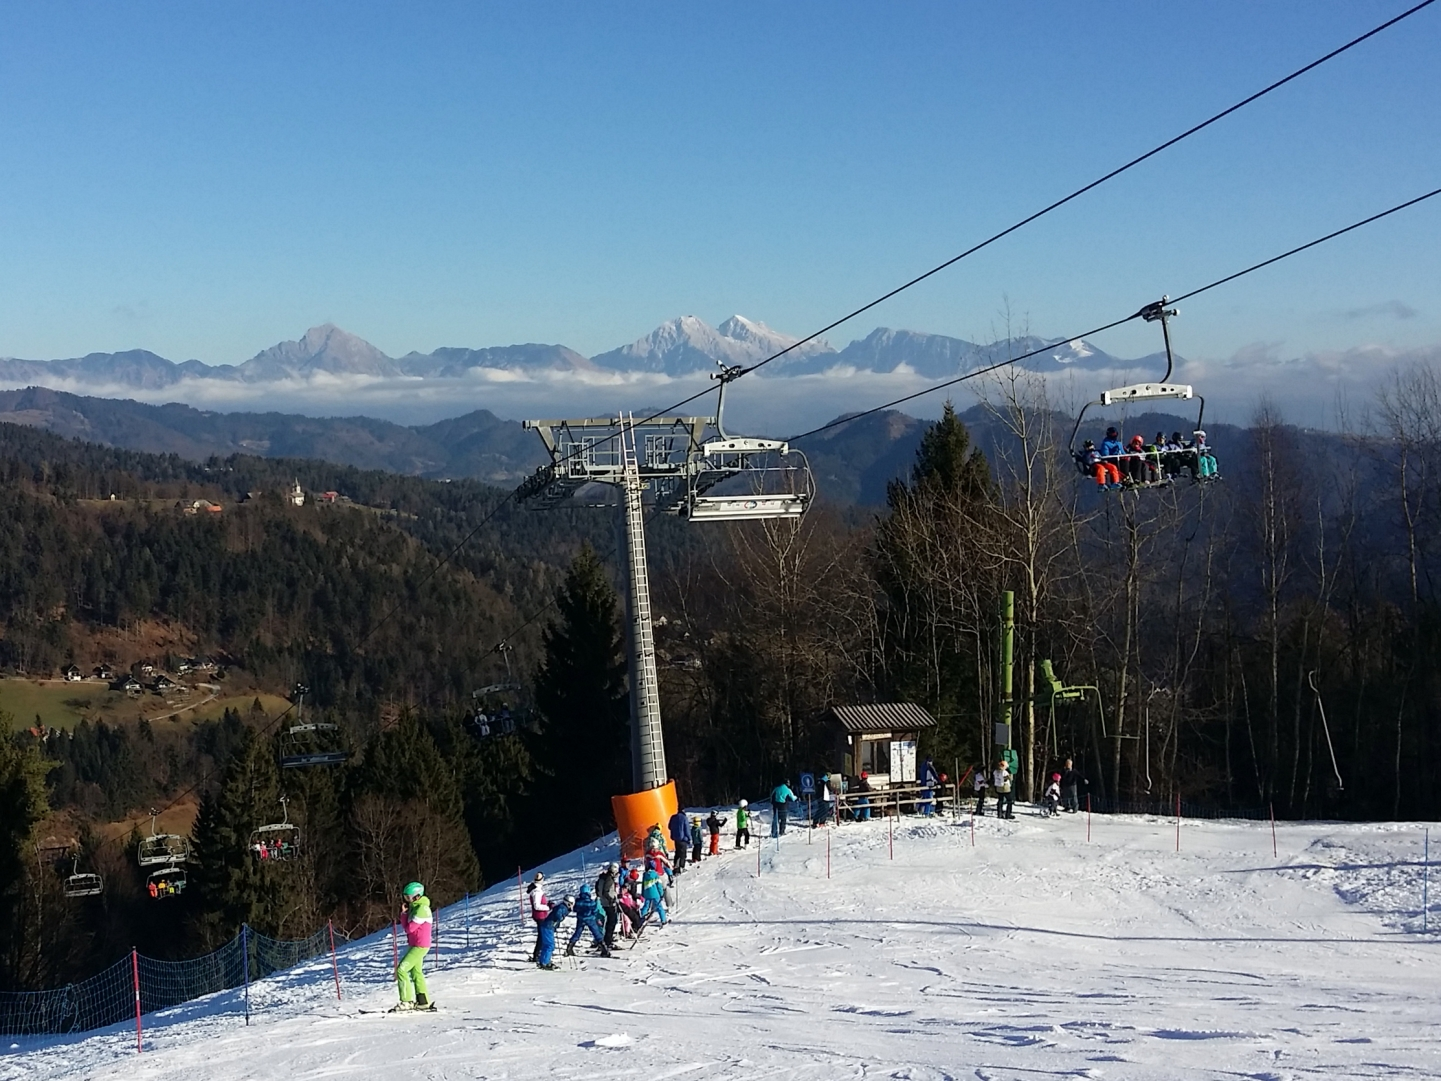 Stari vrh -ski resort 1